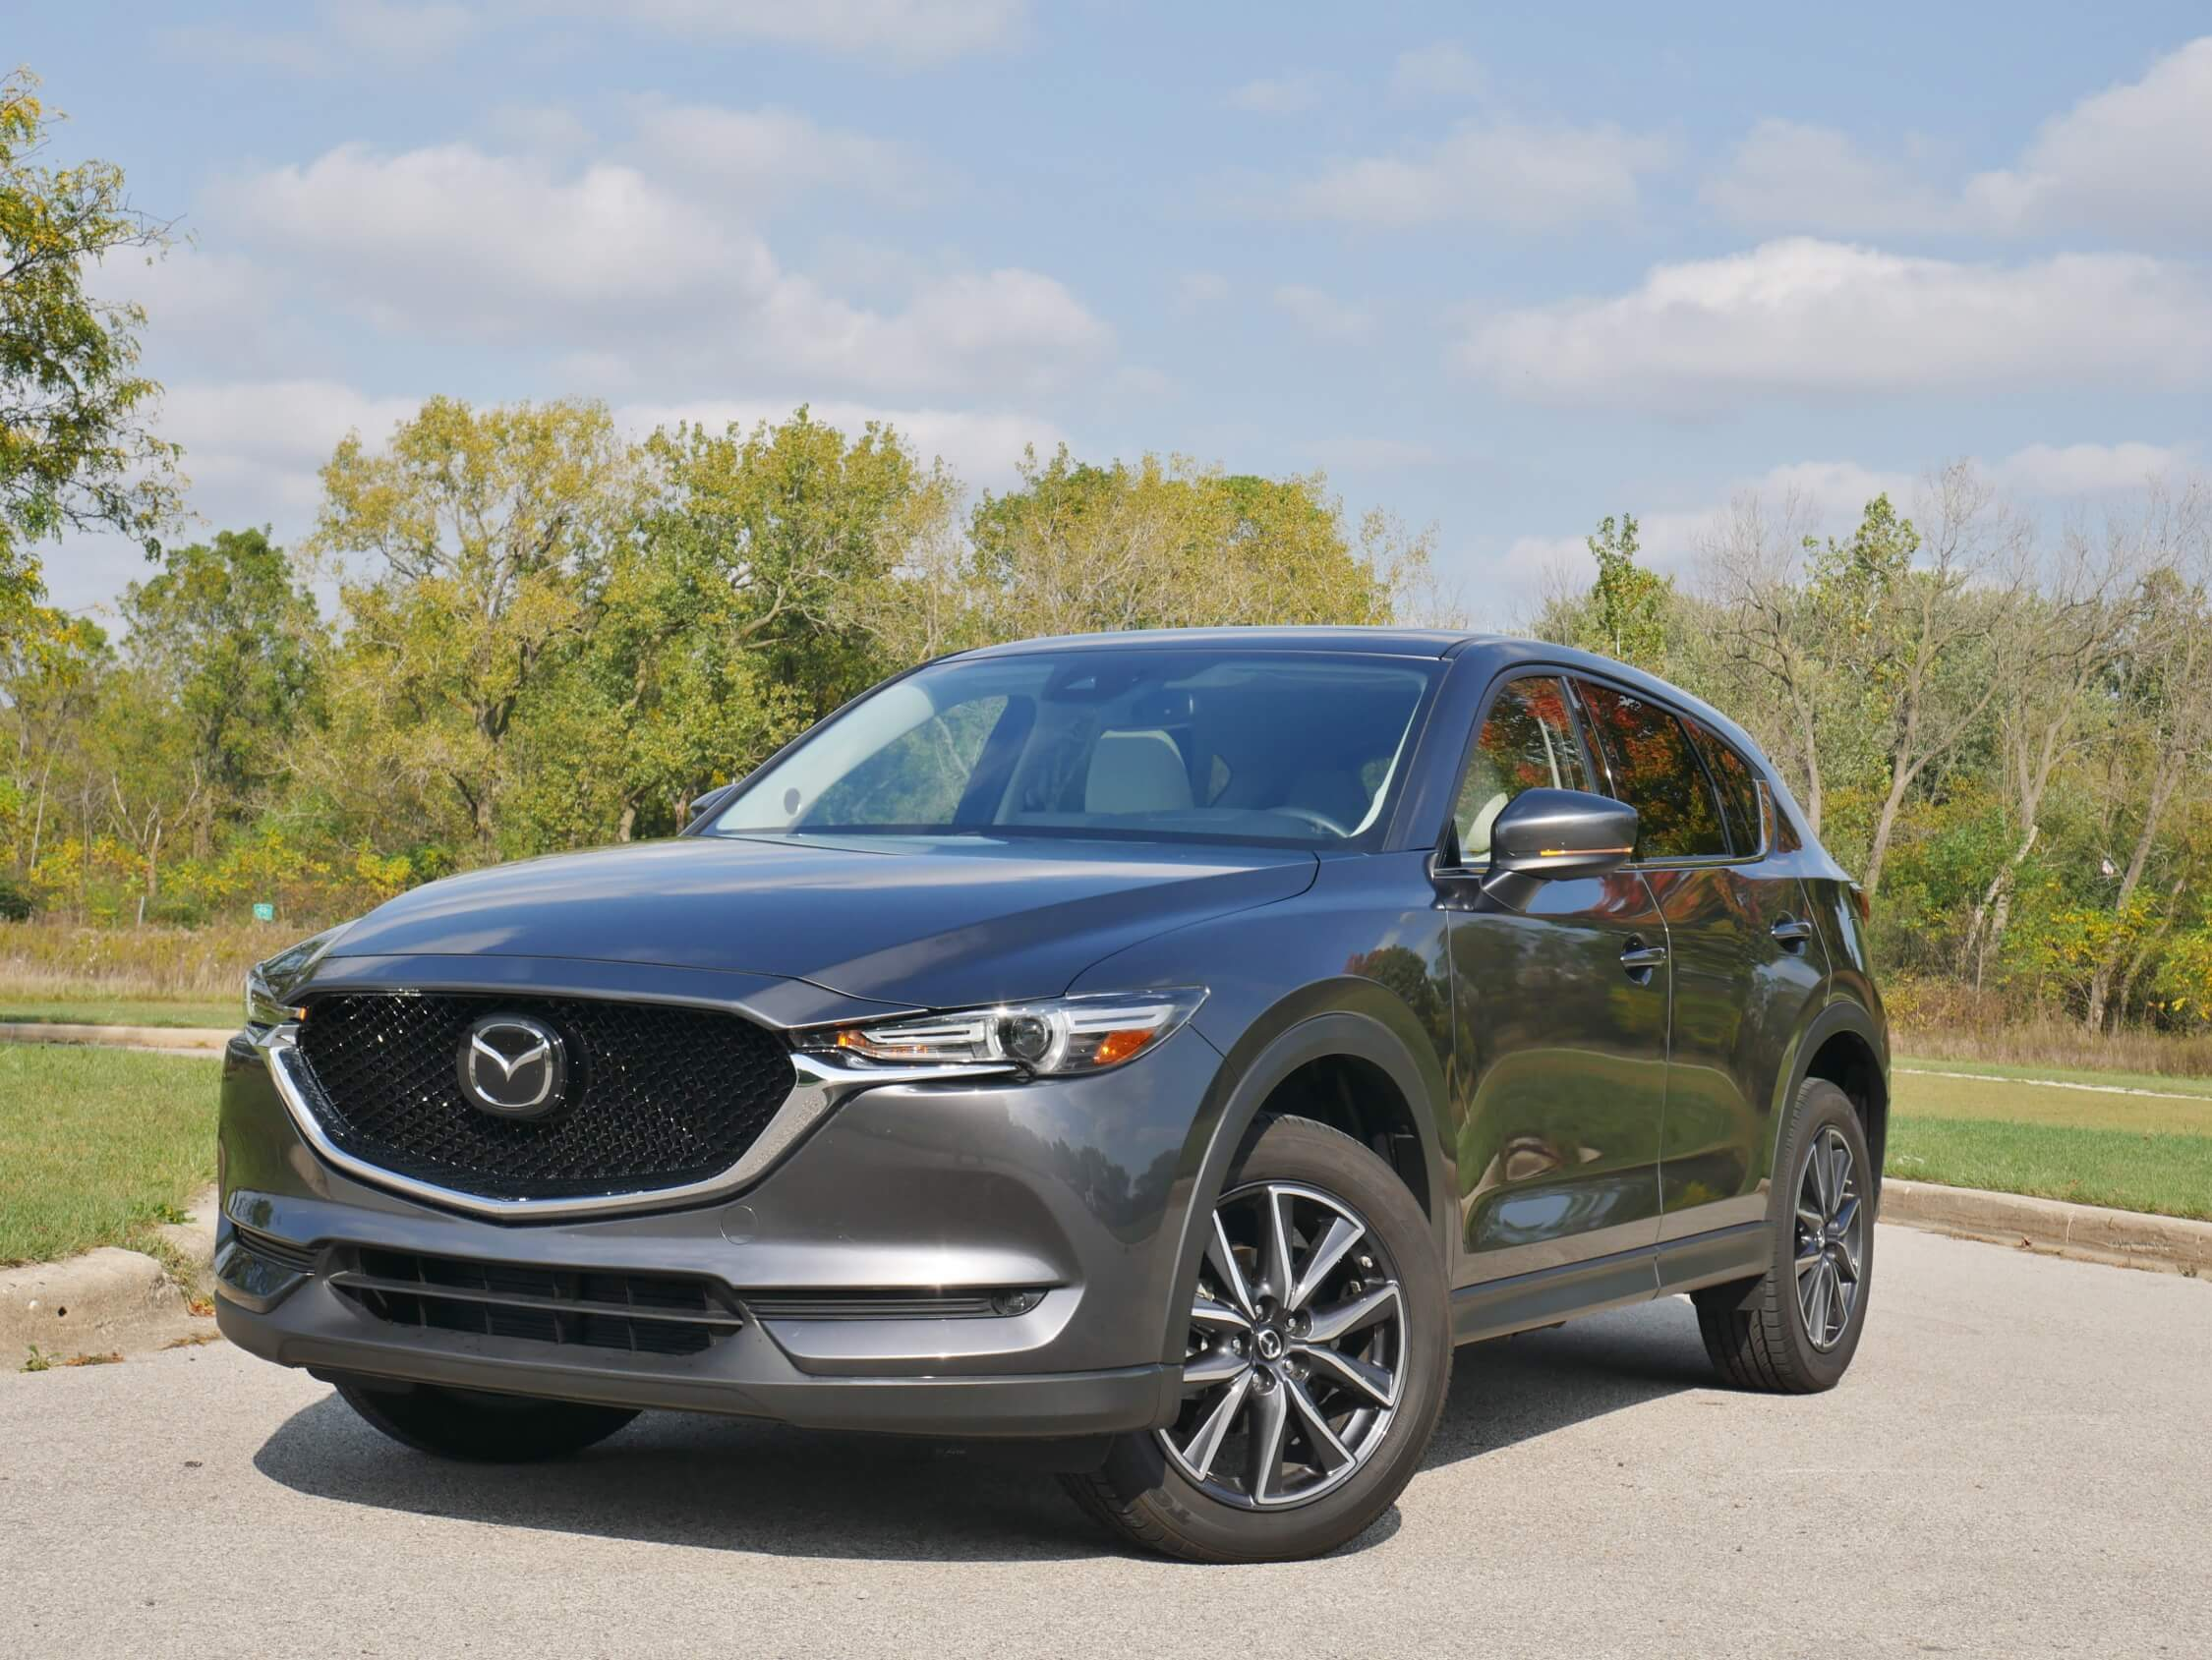 2017 Mazda CX-5 Grand Touring AWD - Bottom Line Review ...